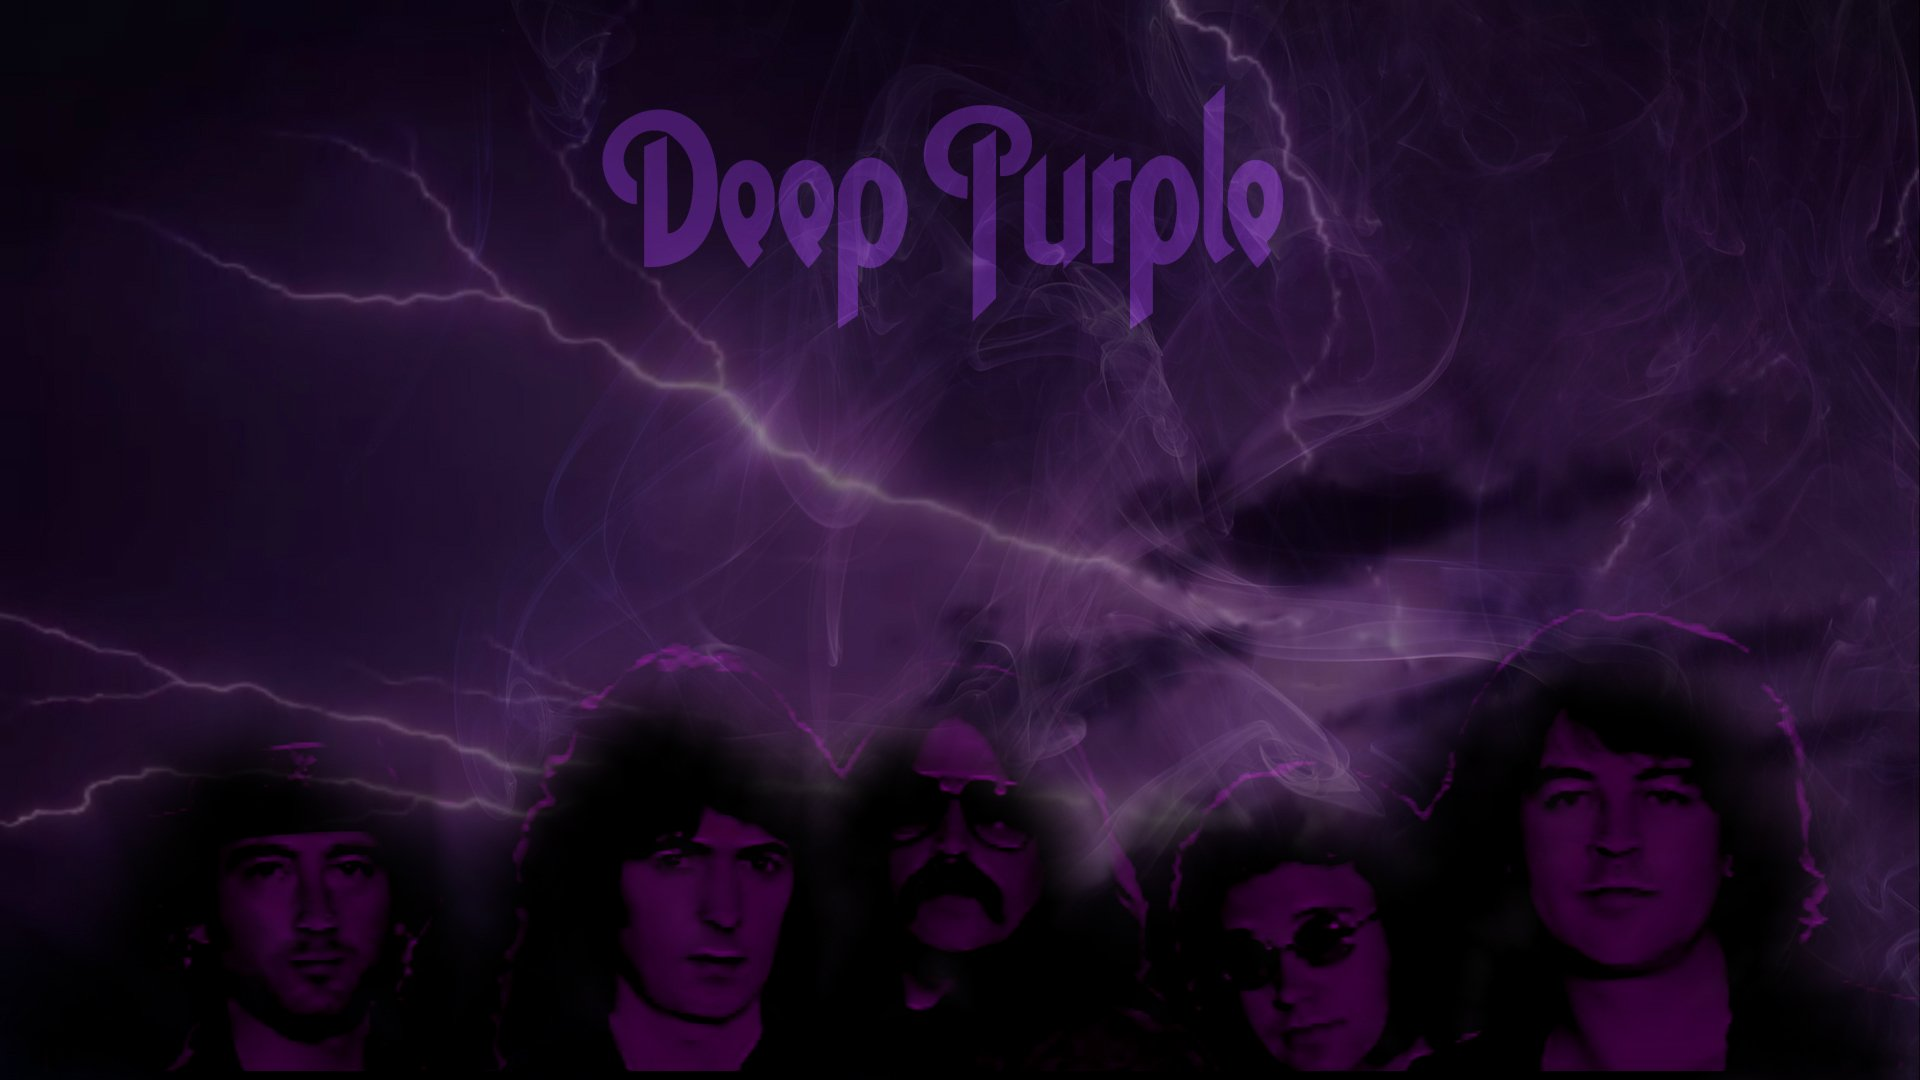 Cool Wallpaper Music Purple - thumb-1920-526390  Graphic_646688.jpg